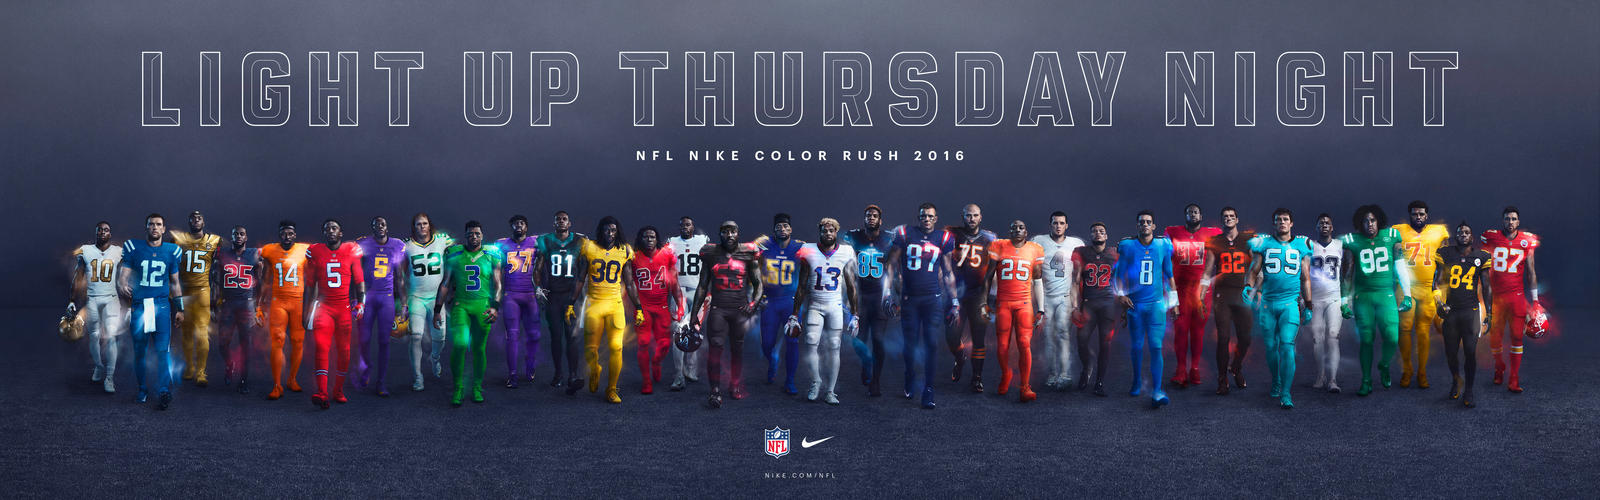 Seahawks Hd Wallpaper Nike And Nfl Light Up Thursday Night Football Nike News